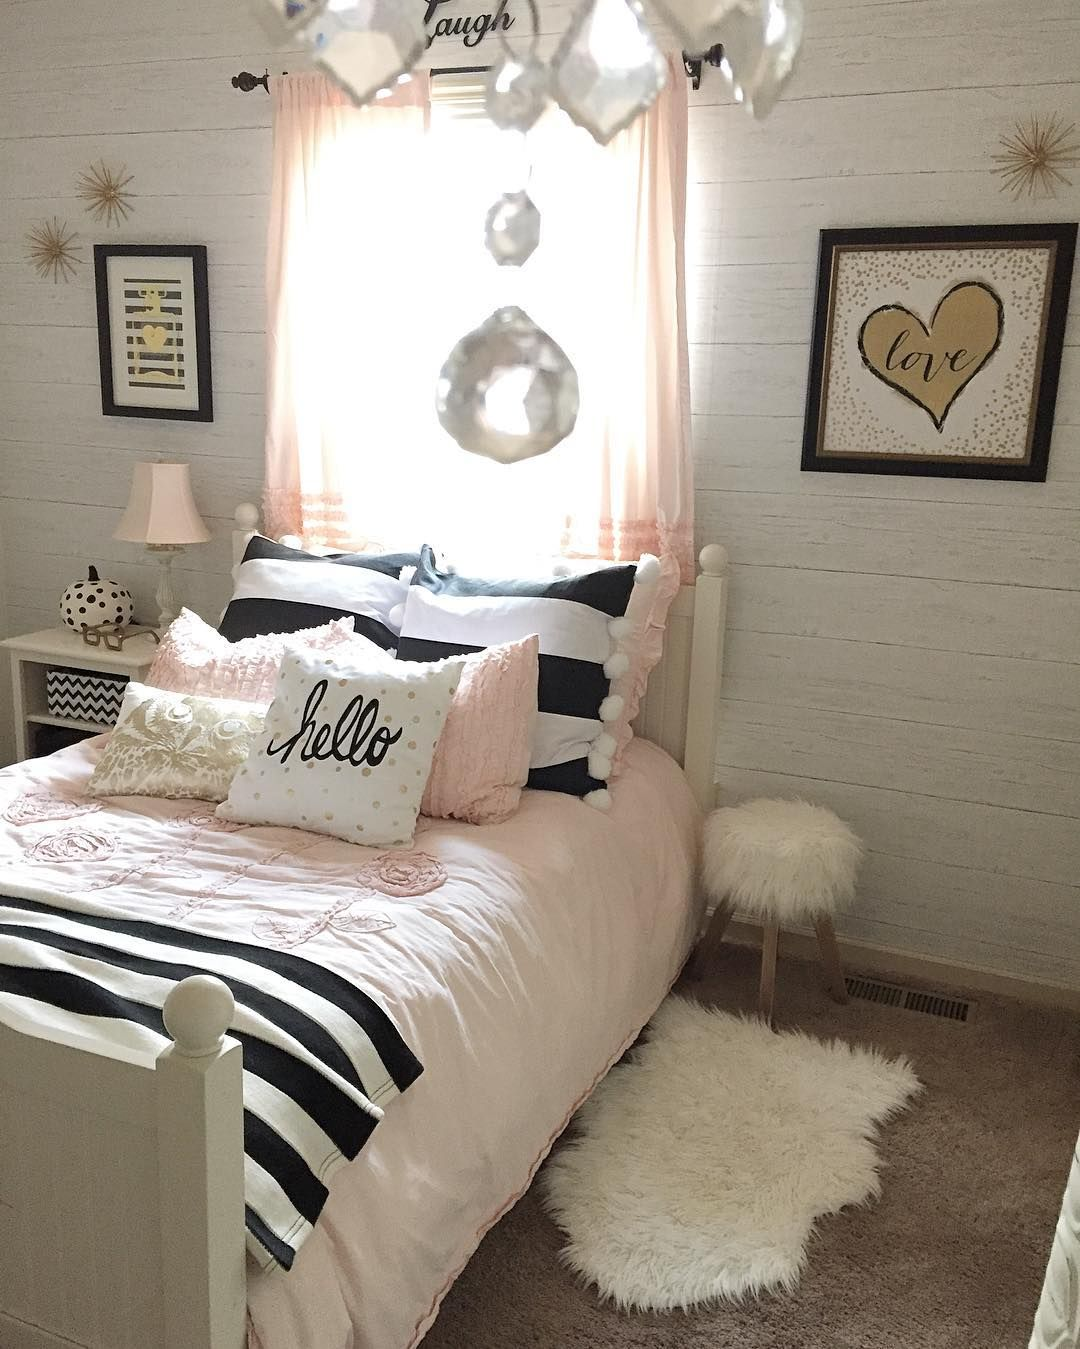 Room Deco: 12 Fun Girl's Bedroom Decor Ideas